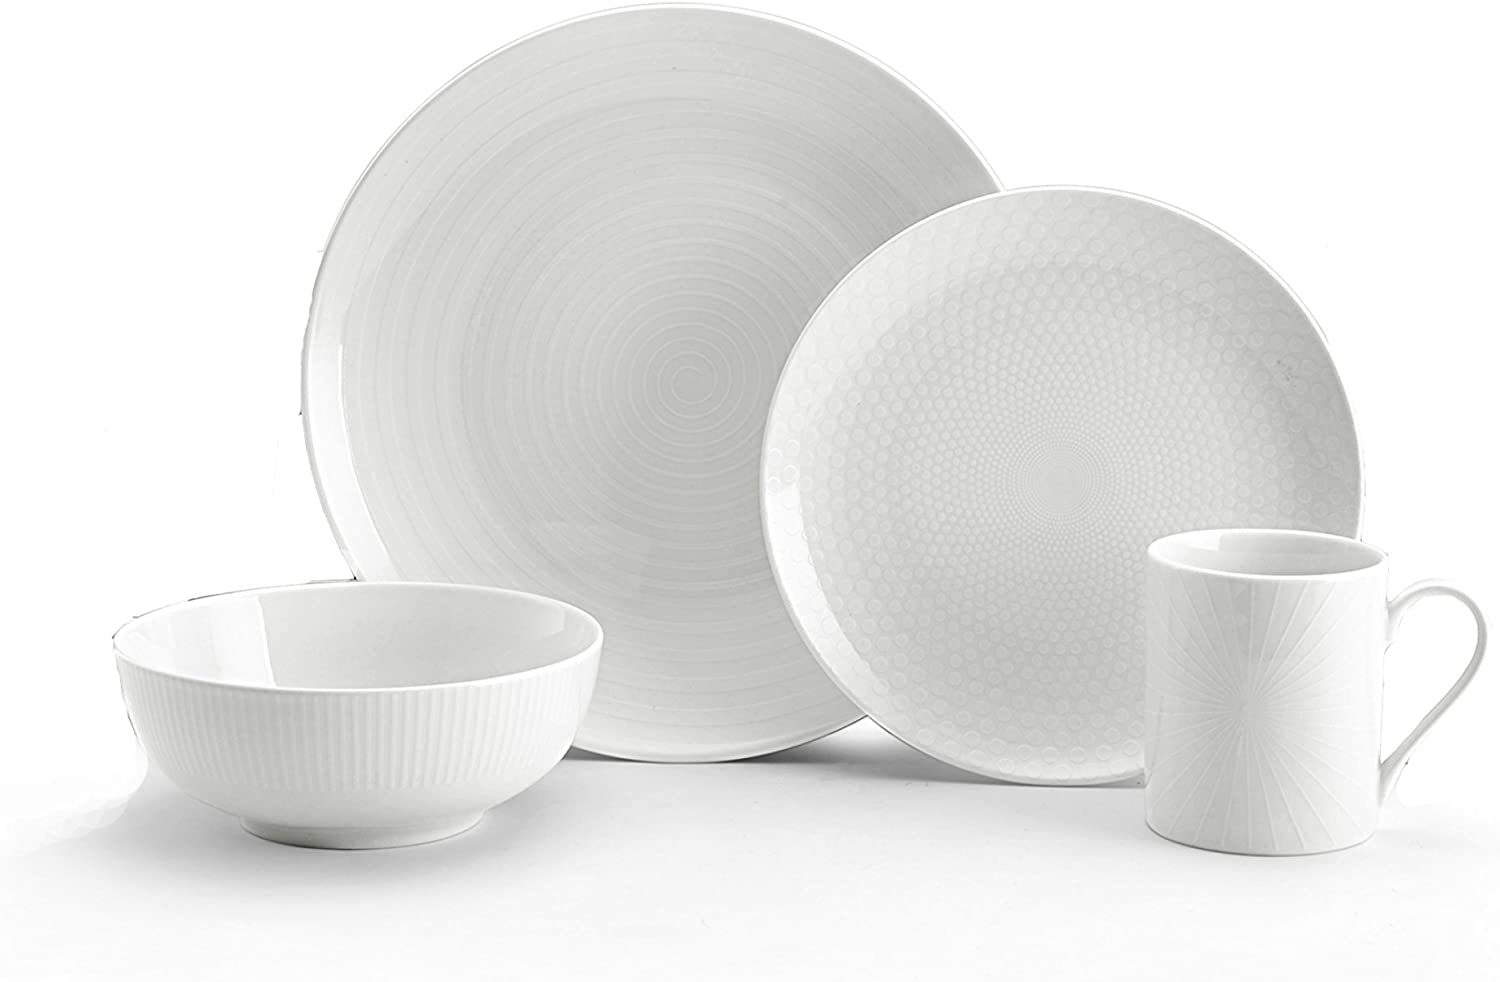 Mikasa Cheers White 16 Piece Dinnerware Set Service For 4 Amazon Co Uk Kitchen Home